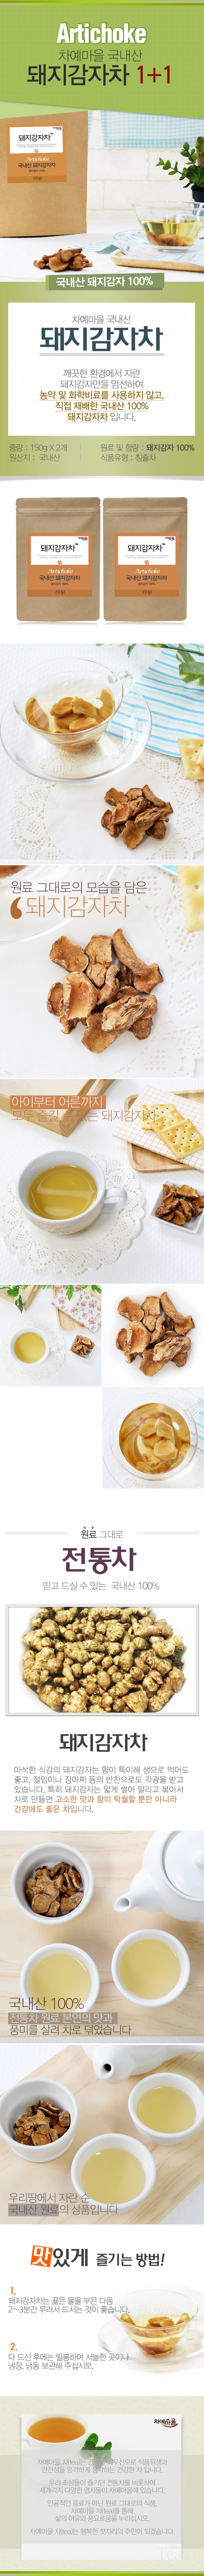 [ InterTeeHandel ] [ChayeTown]Korean Artichoke Tea 150g 1+1pcs